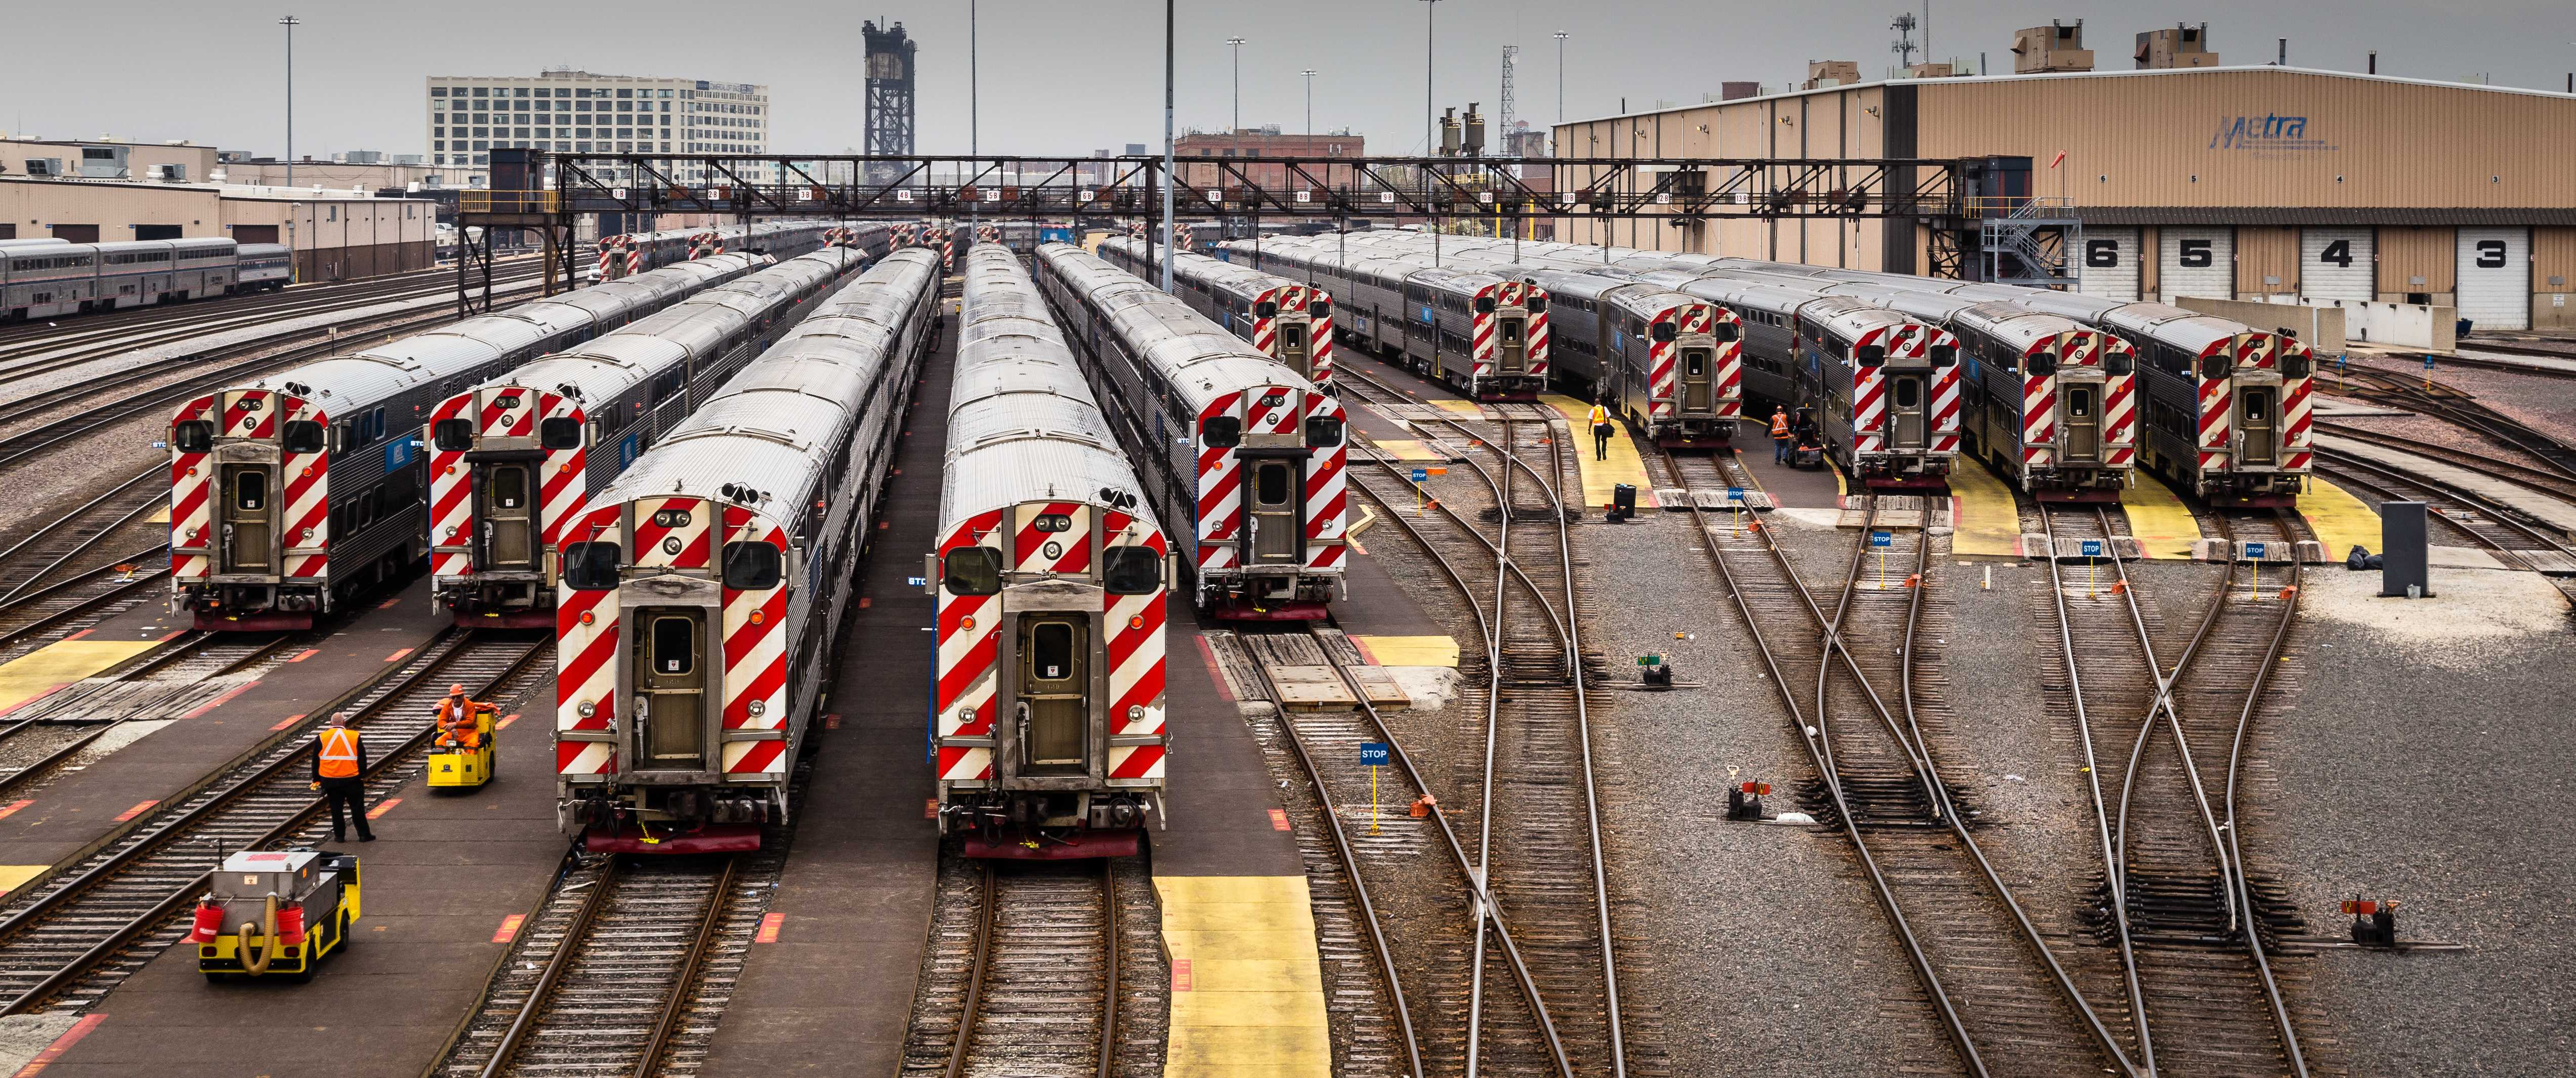 June 2017 saw  a totla of 6,941,185 riders on all of Metra's lines. However, overall ridership has been declining at a rate of almost 2 percent per year. (Photo courtesy of Wikimedia Commons)